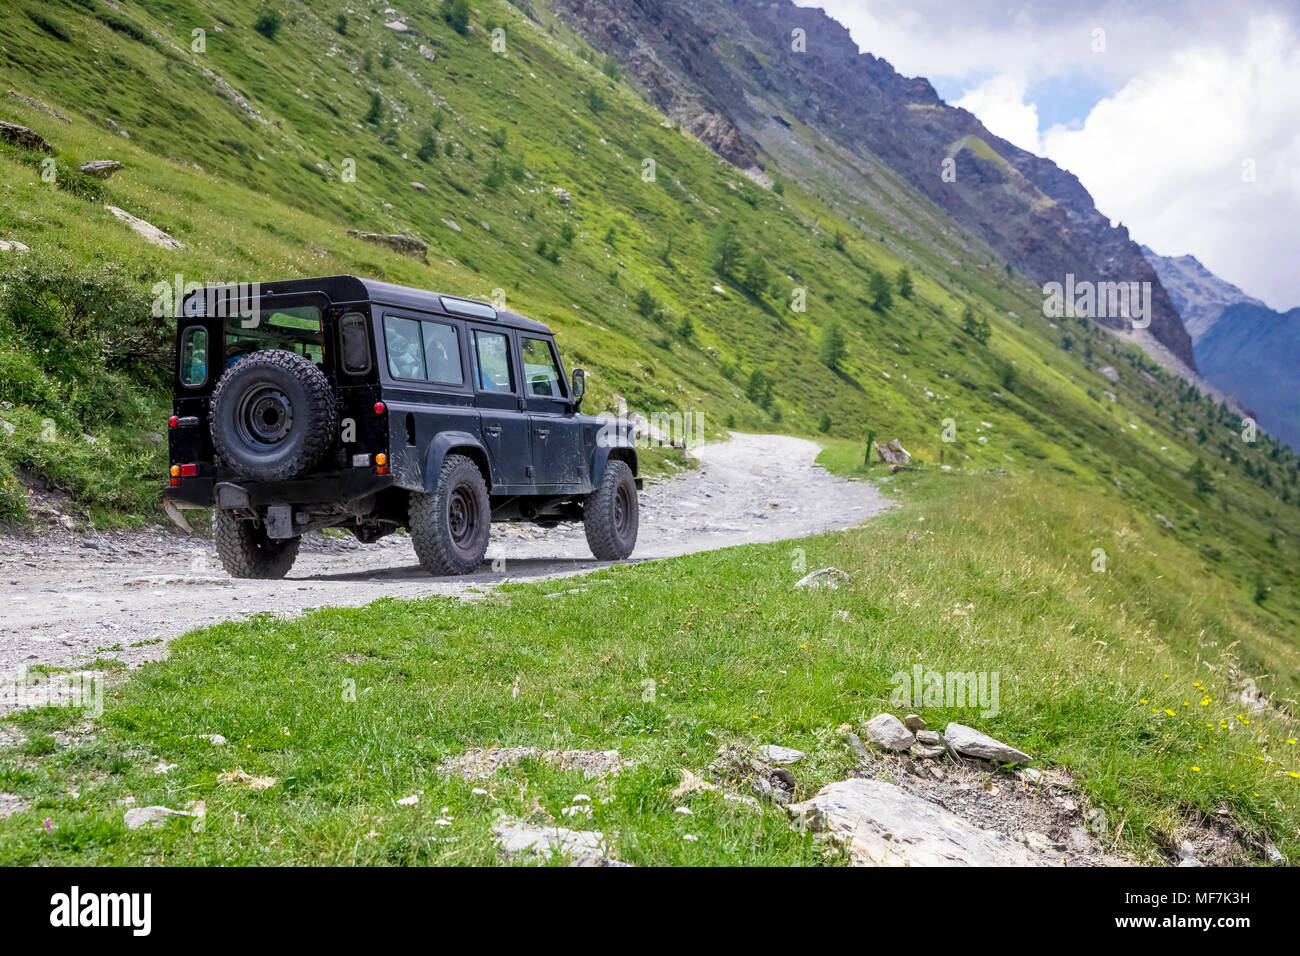 Italy, Piemont, Landrover on gravel road - Stock Image